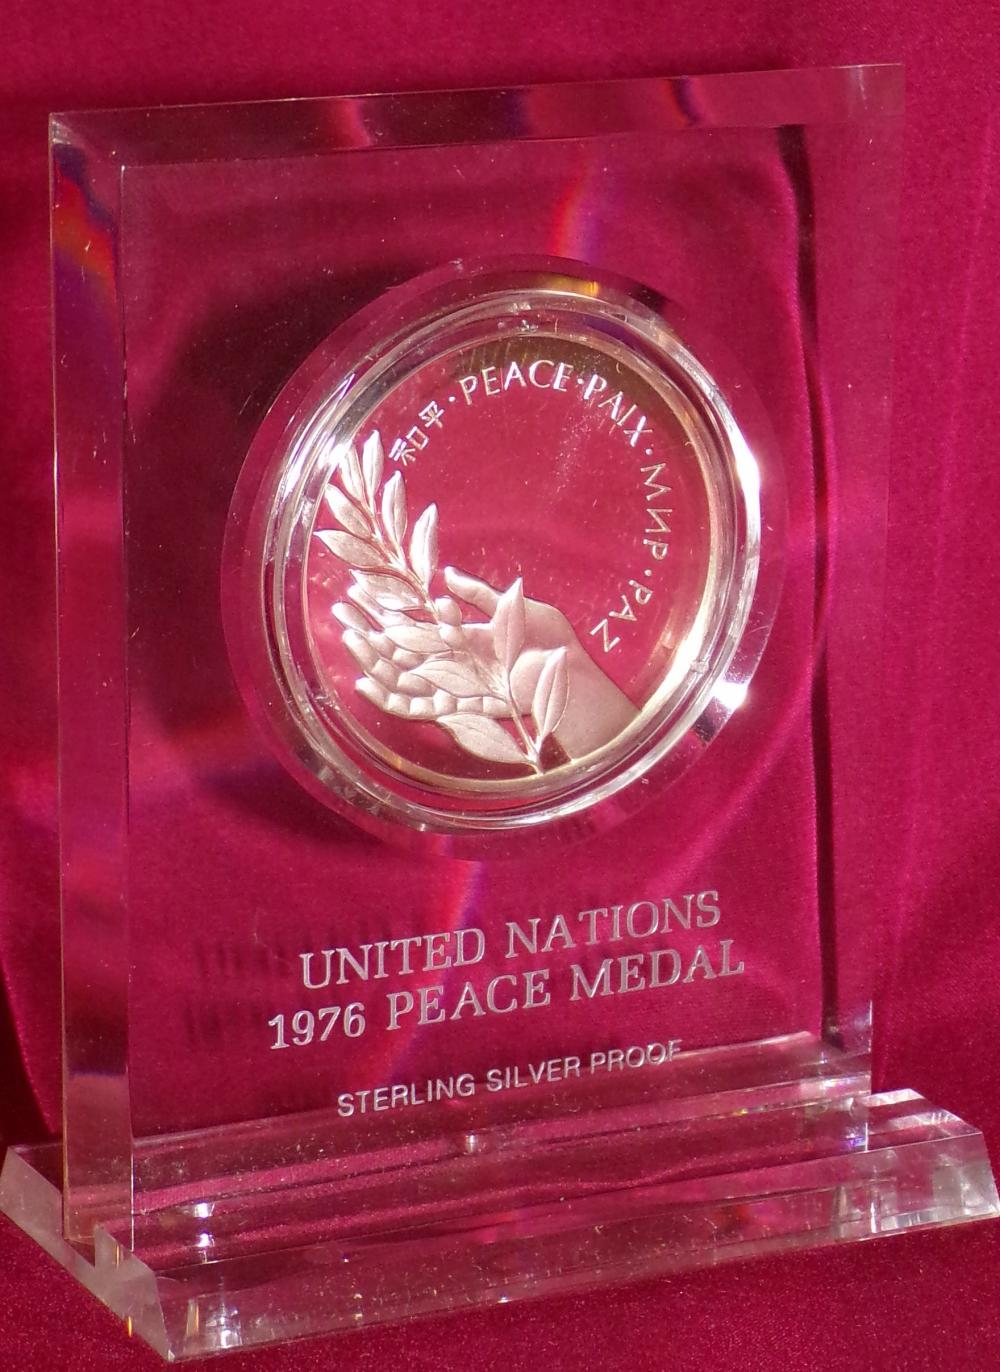 "Sterling silver proof commemorative United Nations 1976 Peace Medal mounted in a custom made clear  plastic stand, stand – 3 ¾"" T x 3"" W, medal – 1 5/8"" diameter"